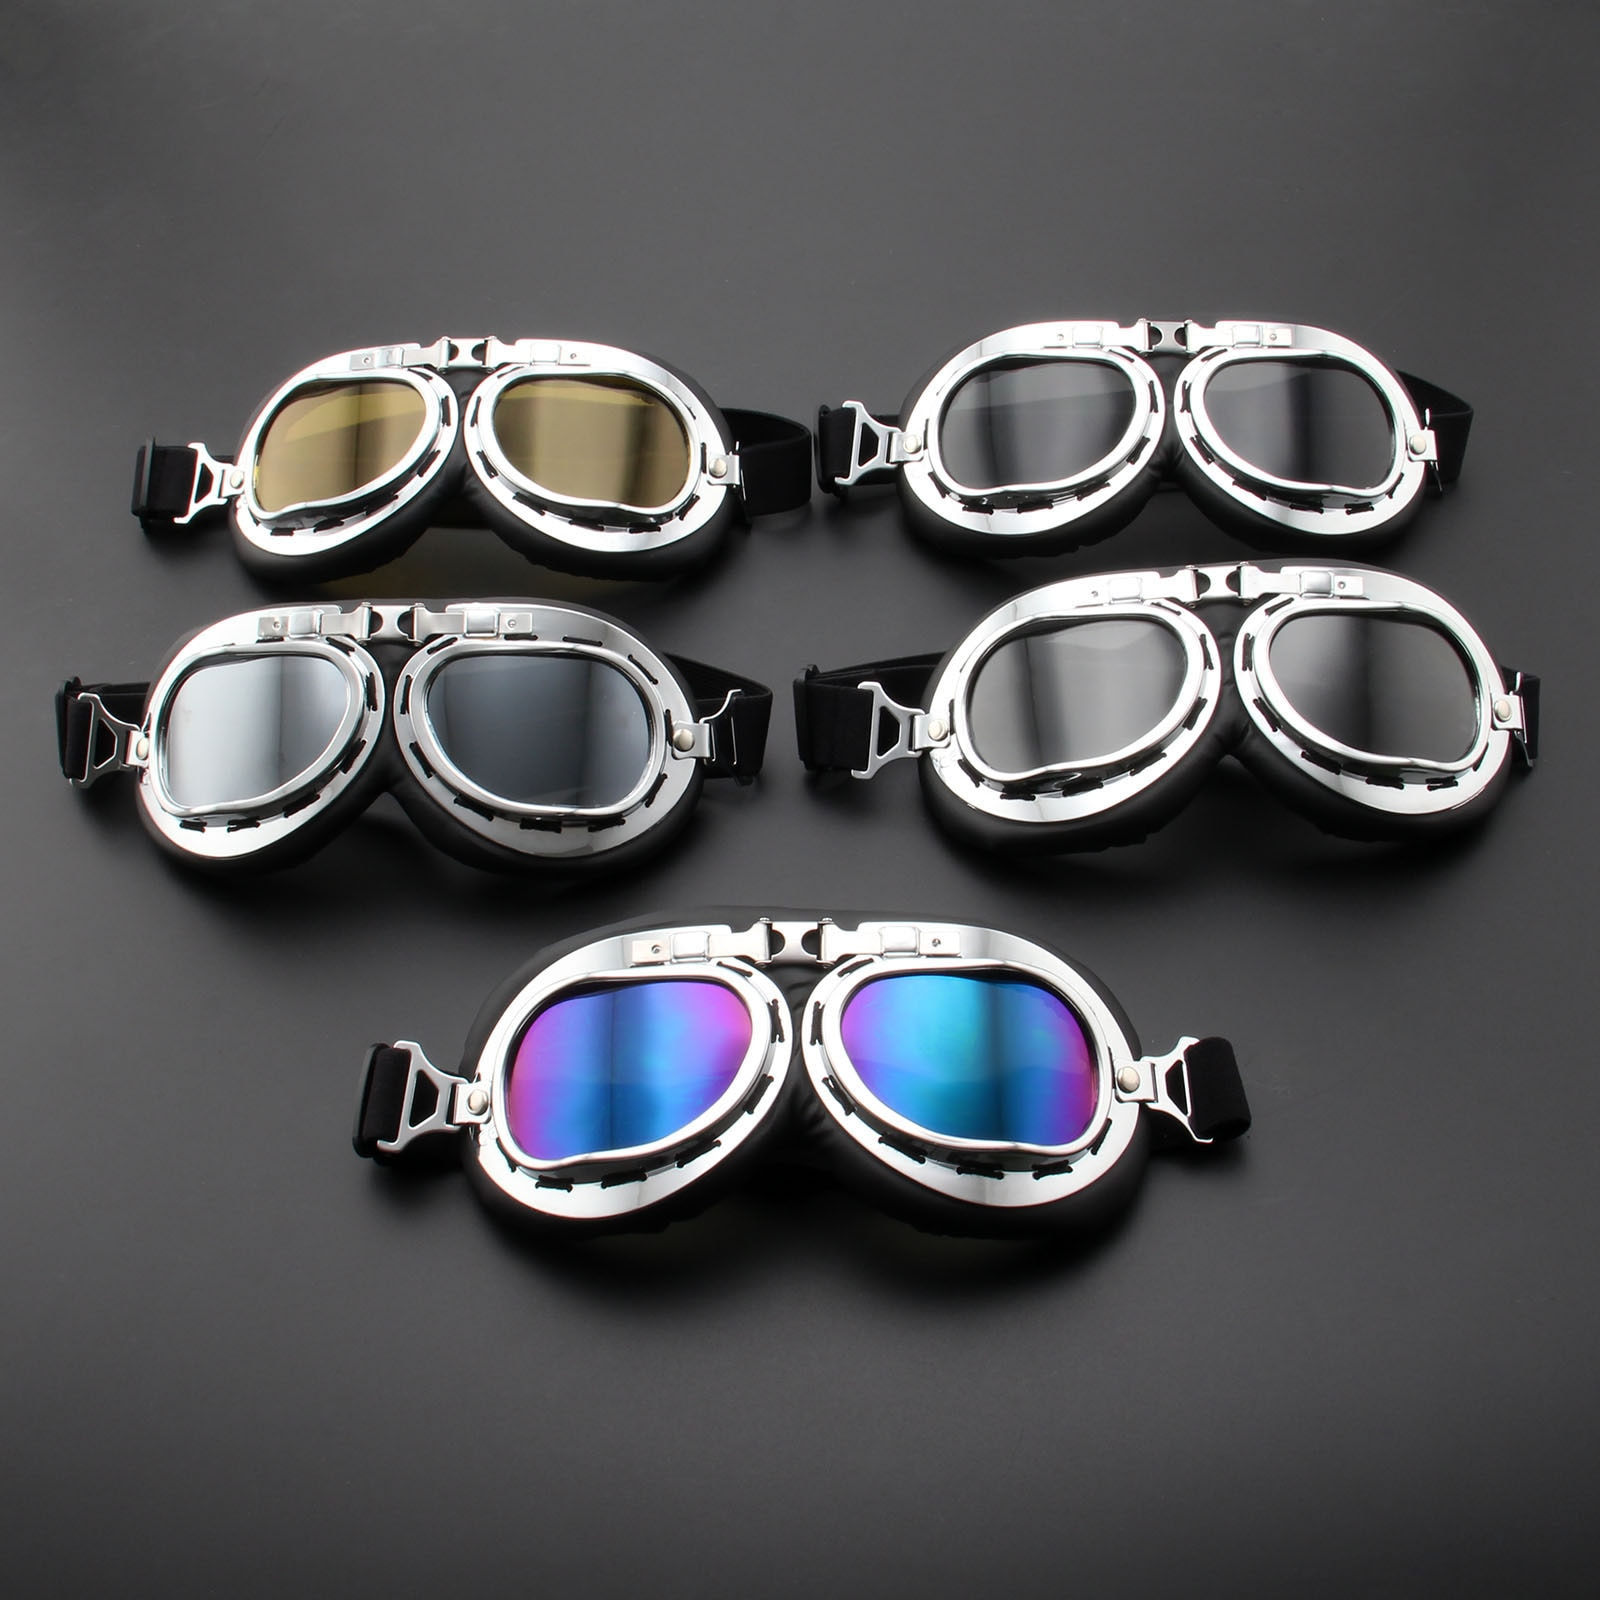 New Vintage Retro Motorcycle Goggles Glasses Vintage Moto Classic Goggles for Pilot Steampunk ATV Bike Copper Helmet vintage motorcycle motocross goggles pilot motorbike mx flying goggles leather glasses atv retro helmet for cycling pit bike